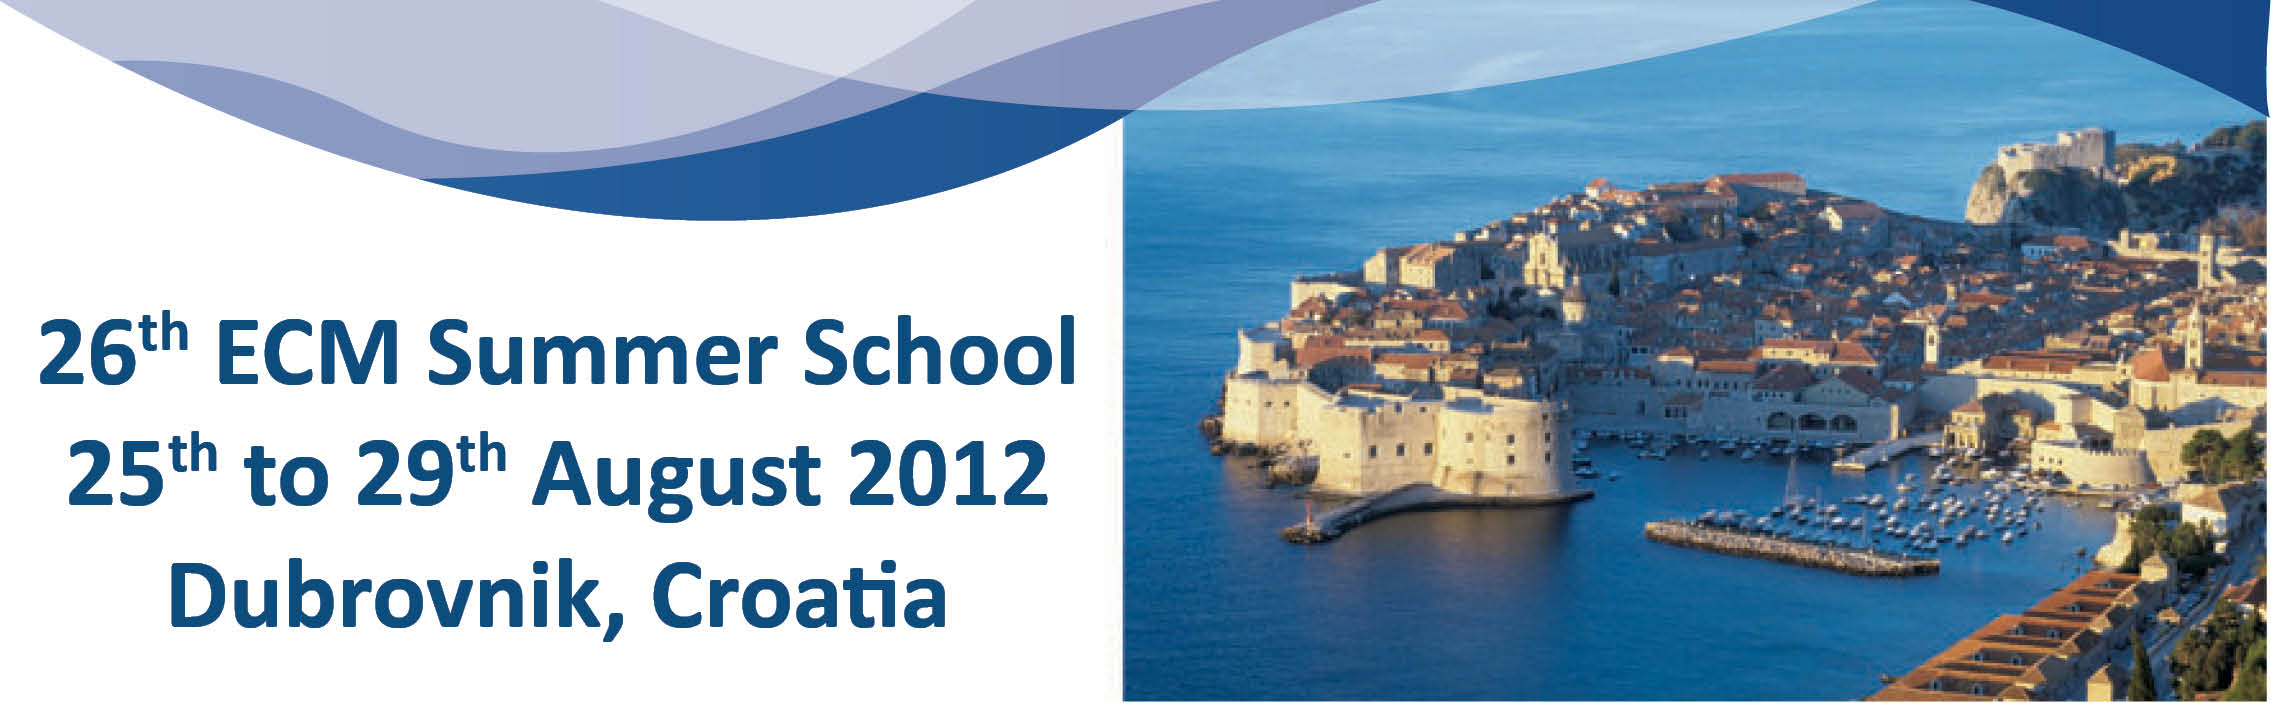 26th ECM Summer School in Dubrovnik